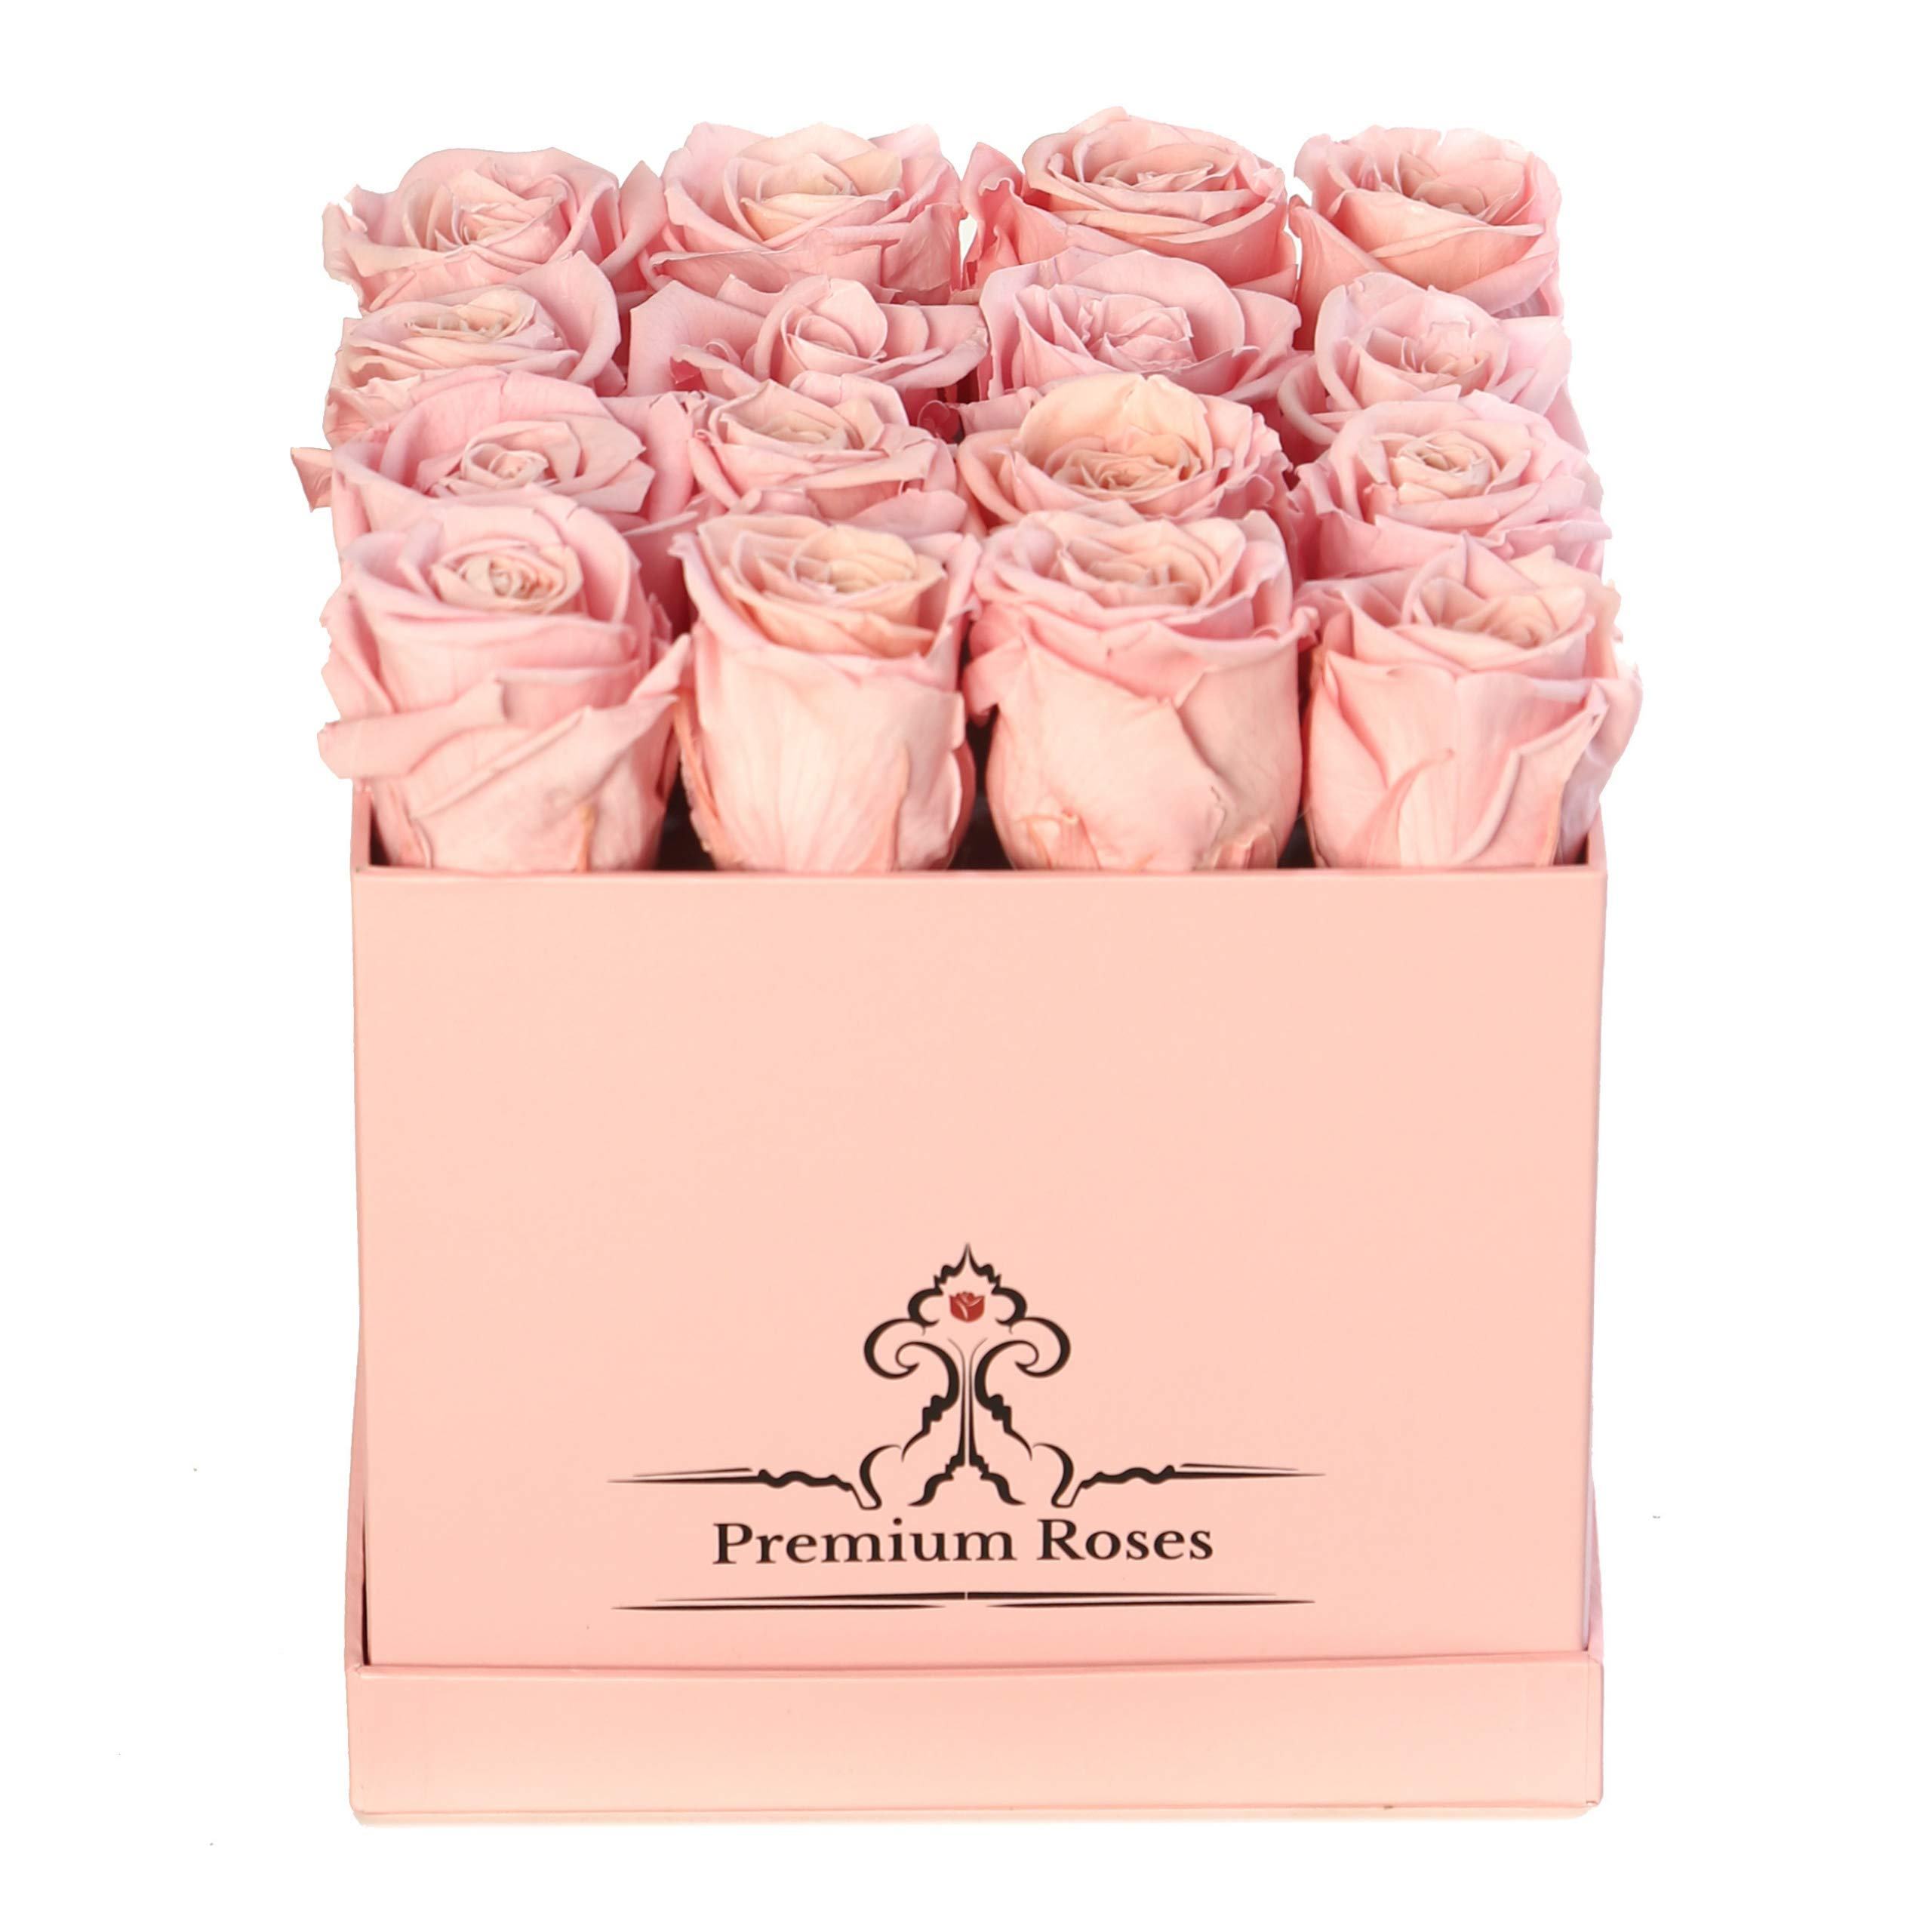 Premium Roses| Real Roses That Last a Year | Fresh Flowers| Roses in a Box (Pink Box, Medium) by Premium Roses